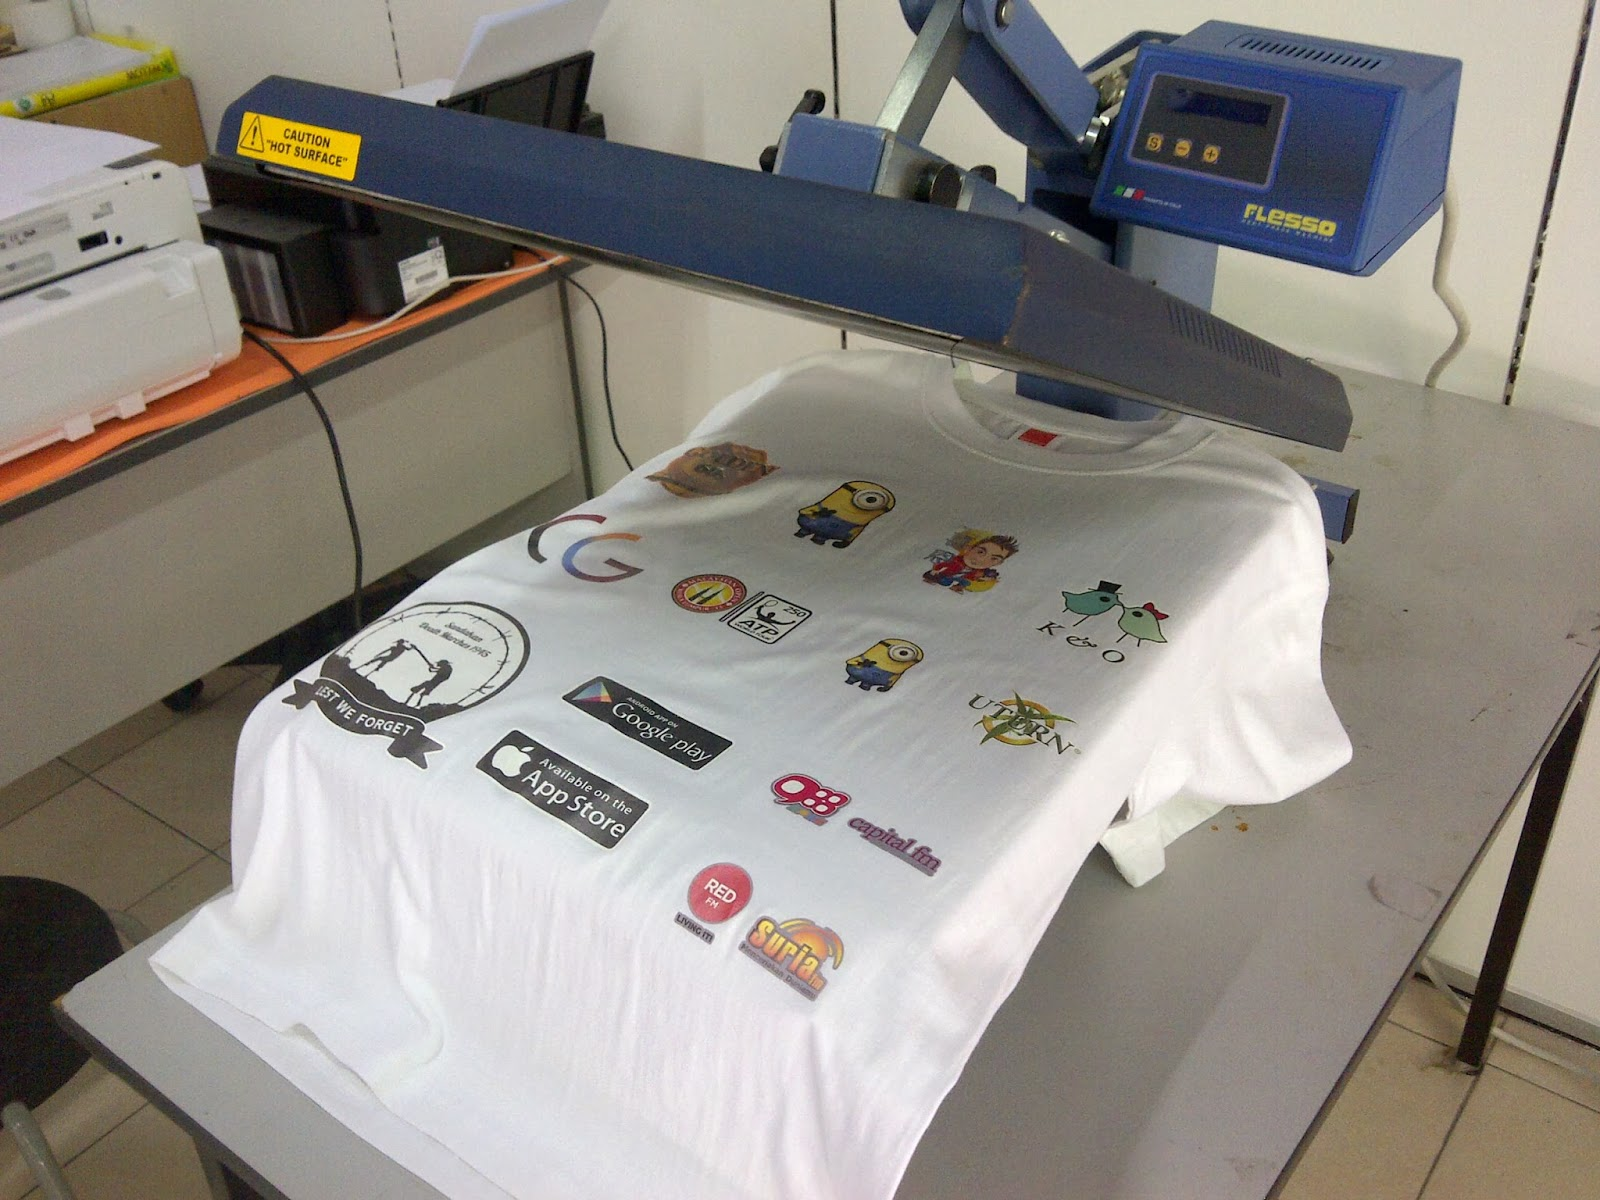 Tshirt printing mug printing in kl button badge heat for Best online tee shirt printing